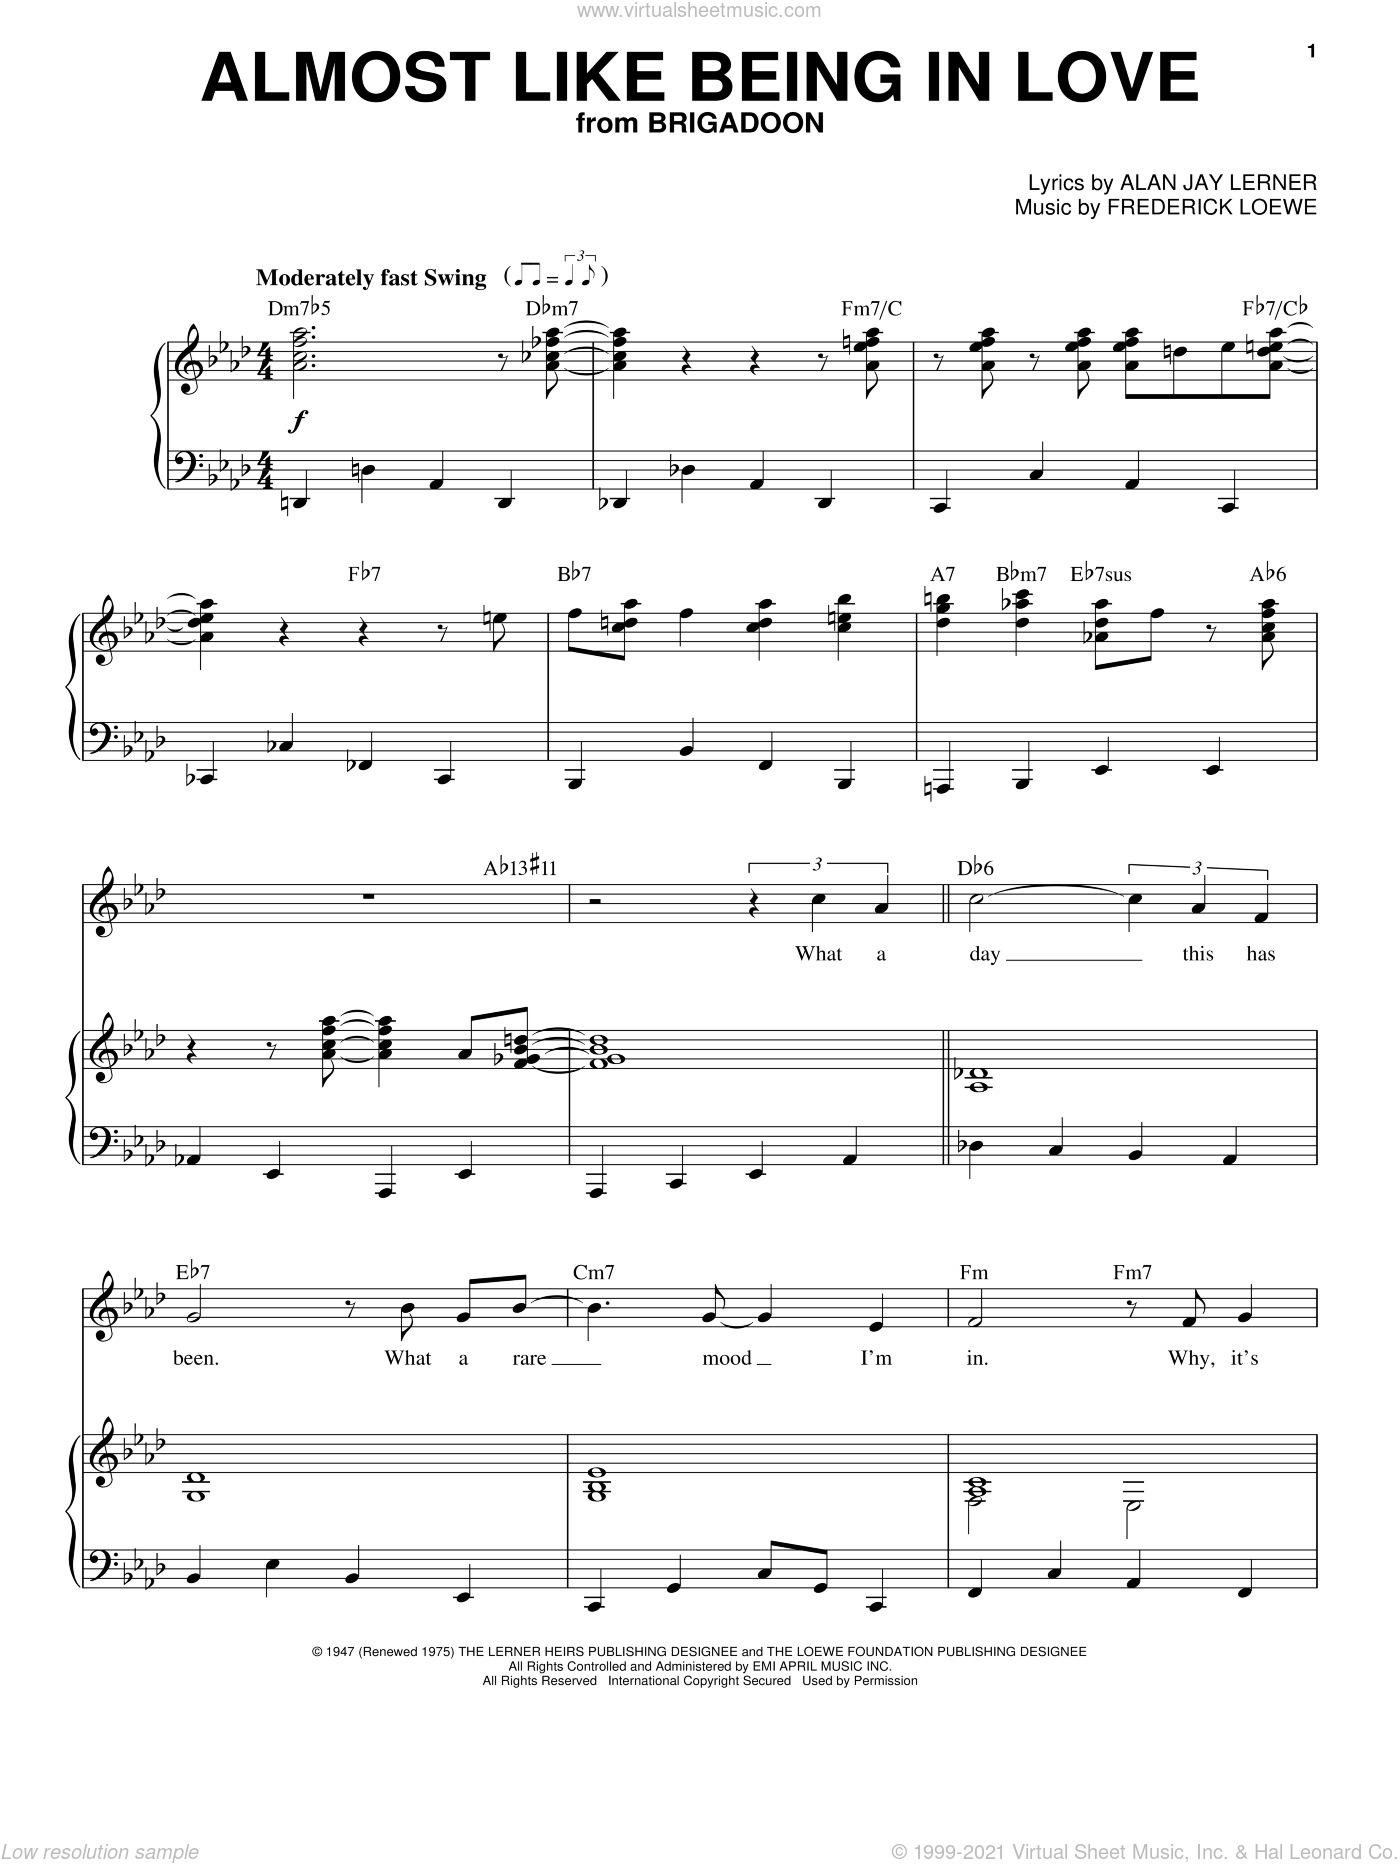 Almost Like Being In Love sheet music for voice and piano by Frank Sinatra, Alan Jay Lerner and Frederick Loewe, intermediate skill level